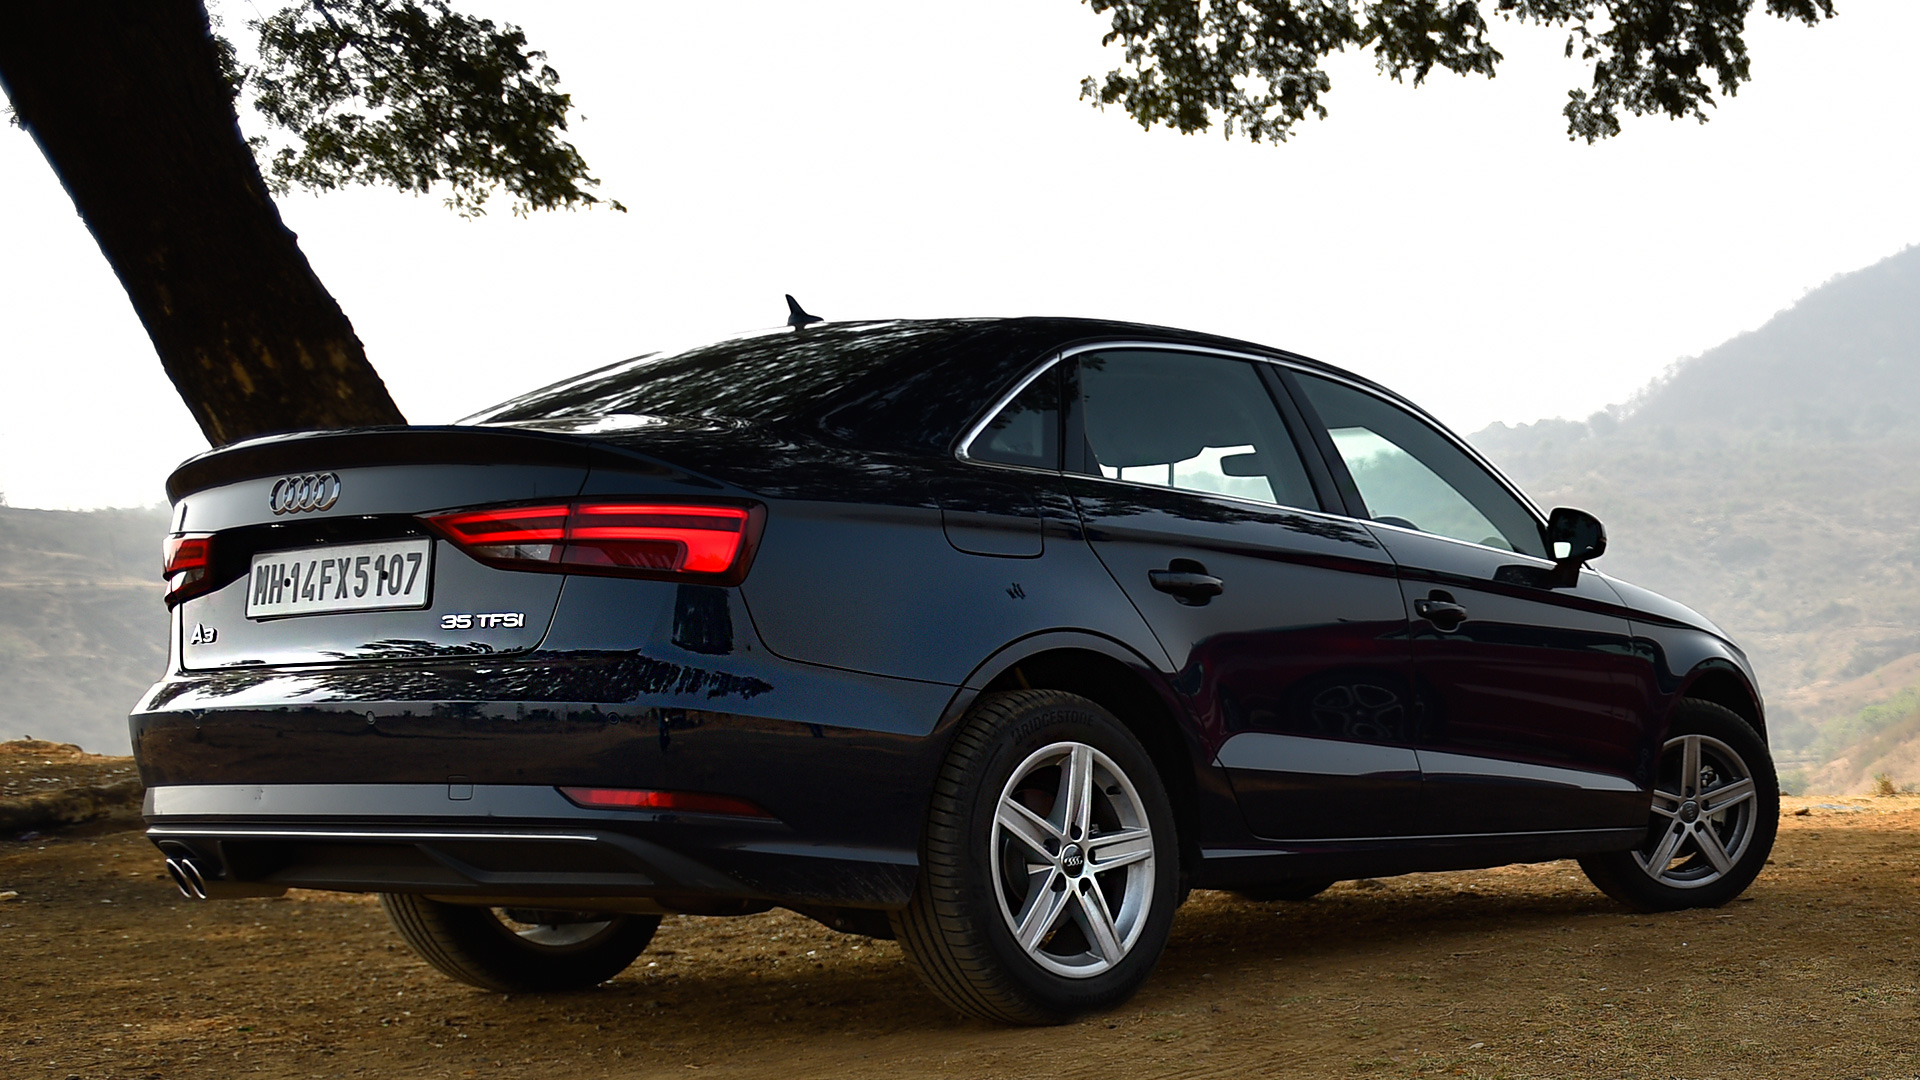 audi a3 2017 35 tfsi technology price mileage reviews specification gallery overdrive. Black Bedroom Furniture Sets. Home Design Ideas